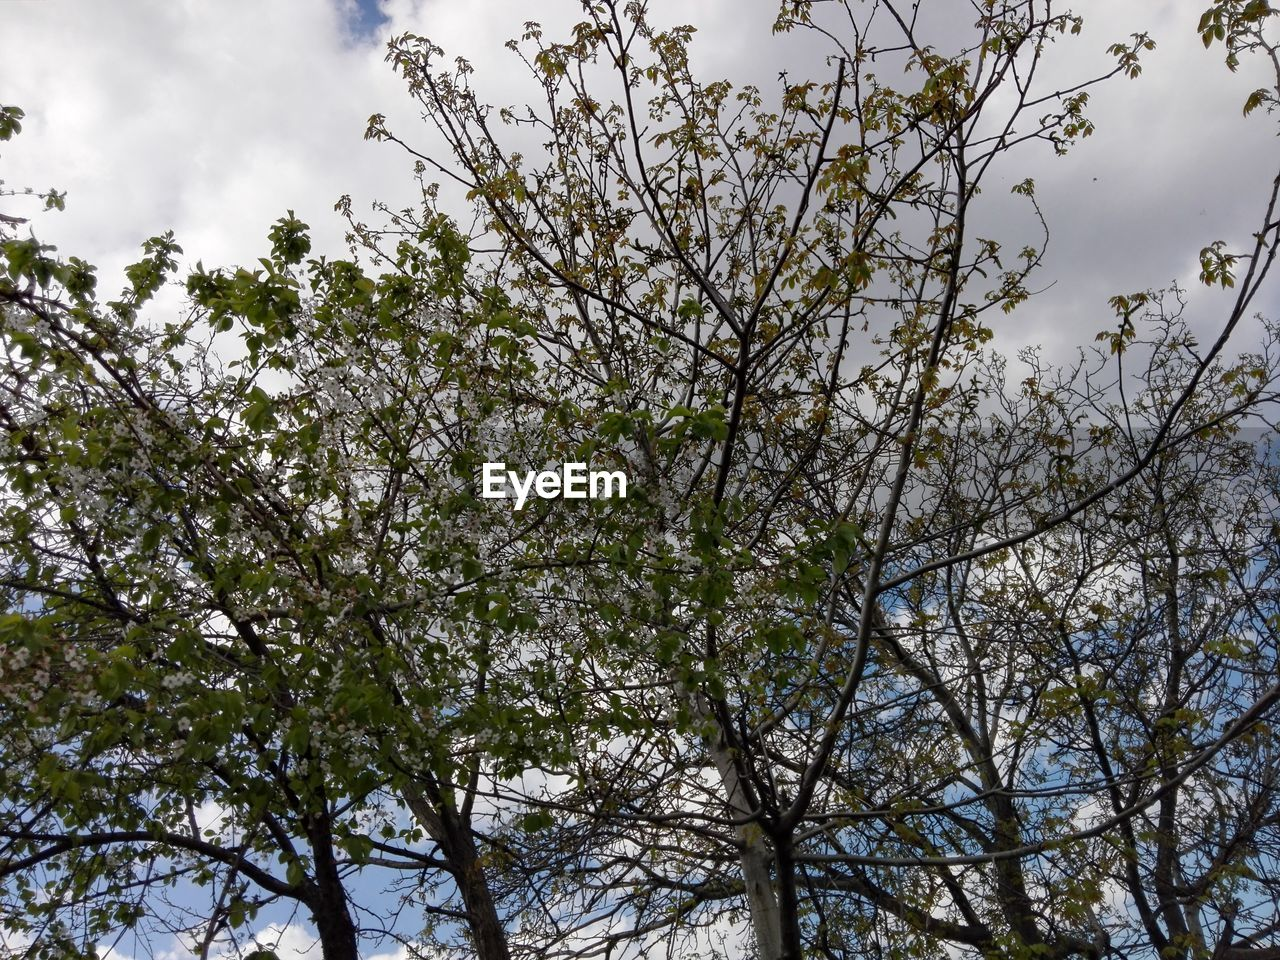 tree, branch, nature, growth, low angle view, flower, beauty in nature, sky, no people, outdoors, day, fragility, freshness, close-up